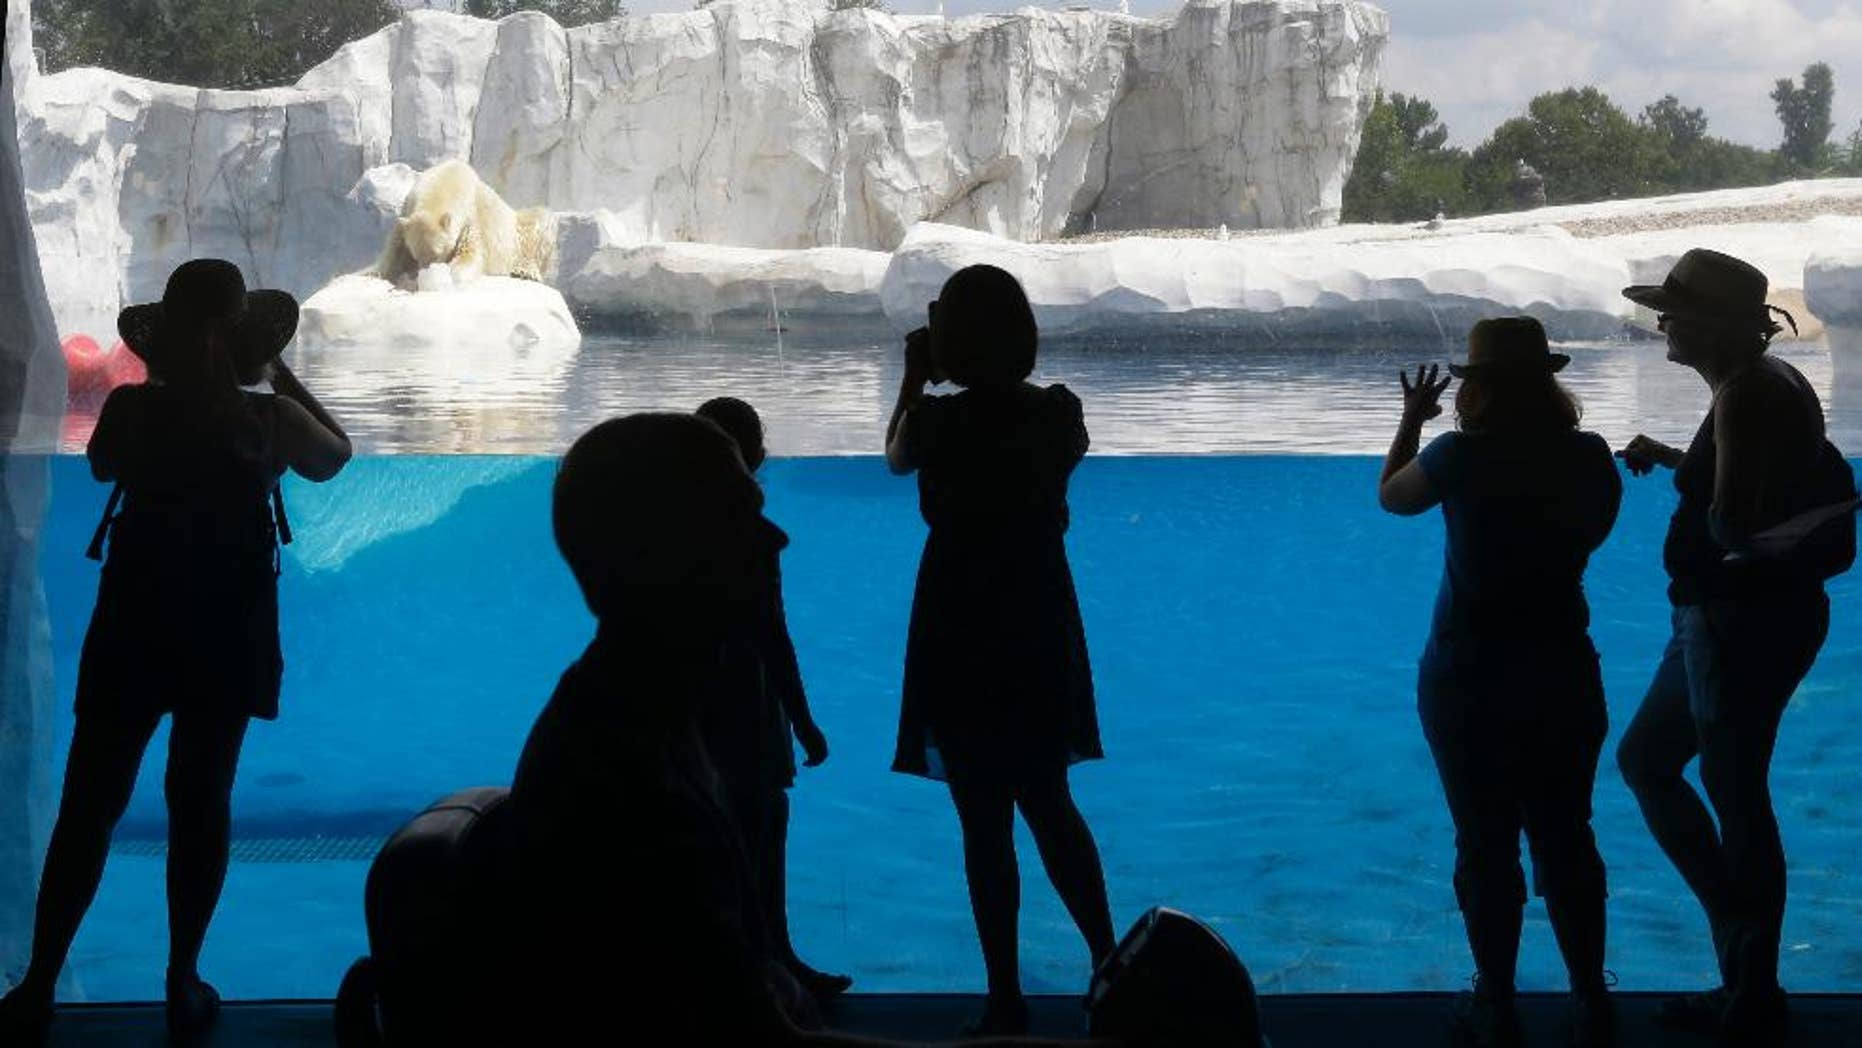 FILE--In this July 17, 2013 file photo, visitors to the Detroit Zoo watch as Nuka, an 8-year-old polar bear snacks on a frozen treat of fish incased in ice at the zoo in Royal Oak, Mich. The zoo says Monday, April 20, 2015 that construction on the anaerobic biodigester begins this spring and will be completed this year. The biodigester will turn about 400 tons of manure a year as well as other organic waste into methane-rich gas. (AP Photo/Carlos Osorio, file)